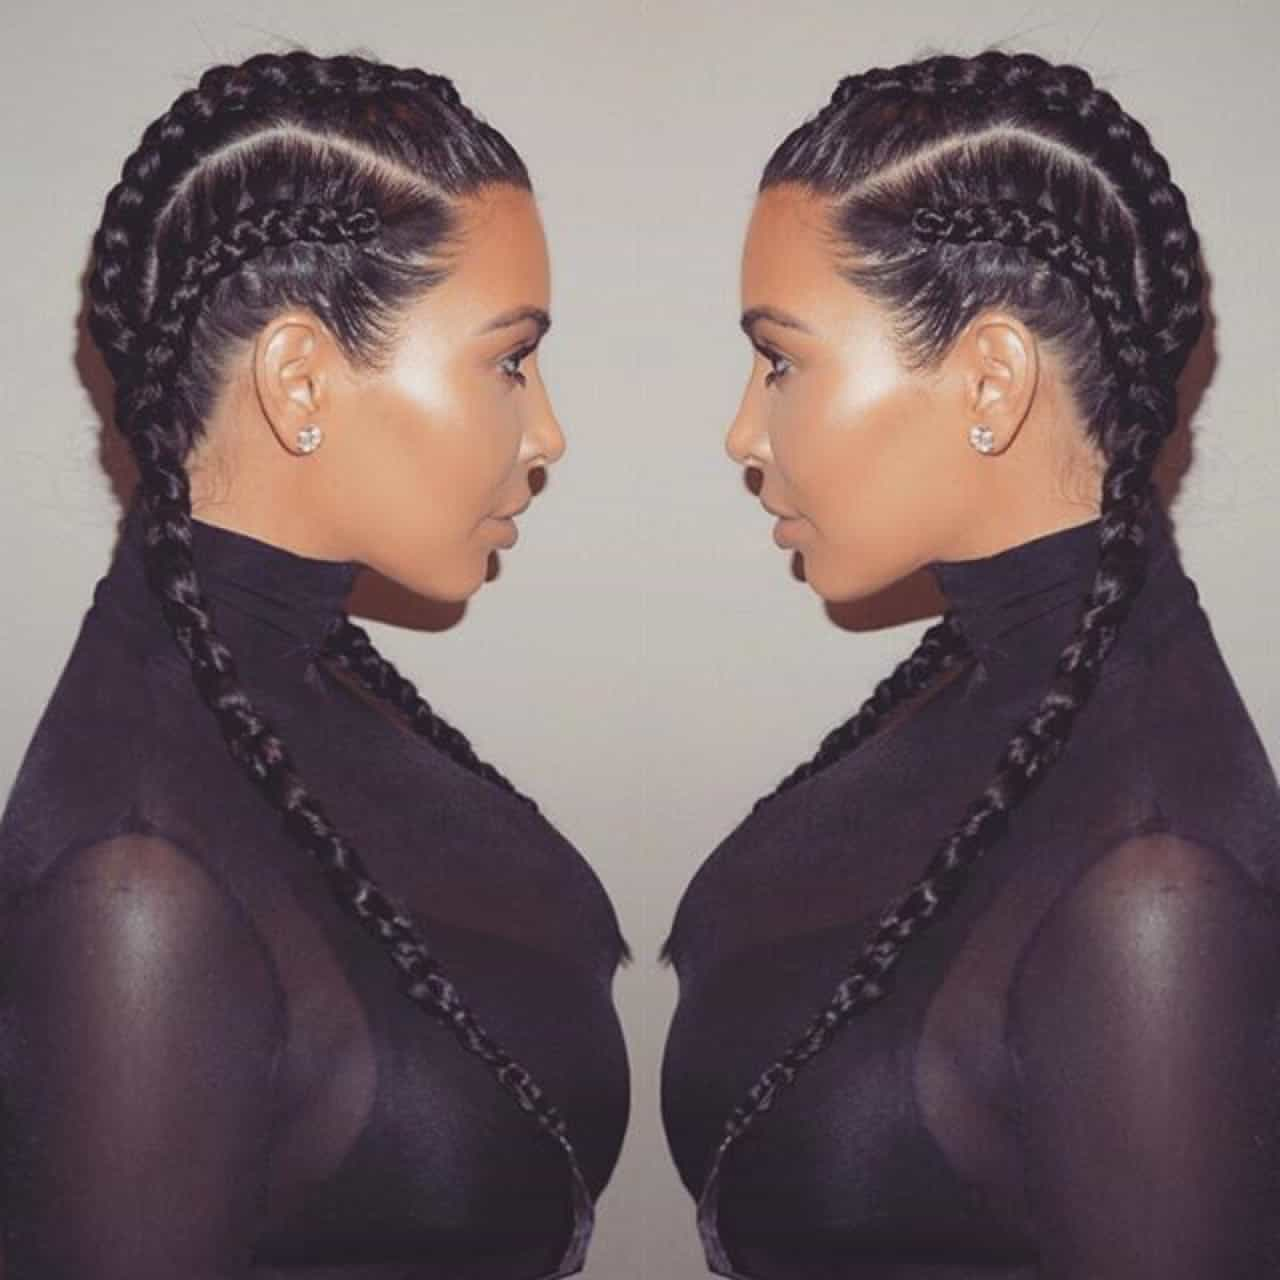 Stupendous Kim Kardashian Braided Hairstyle With Scarf Braids Hairstyles For Men Maxibearus